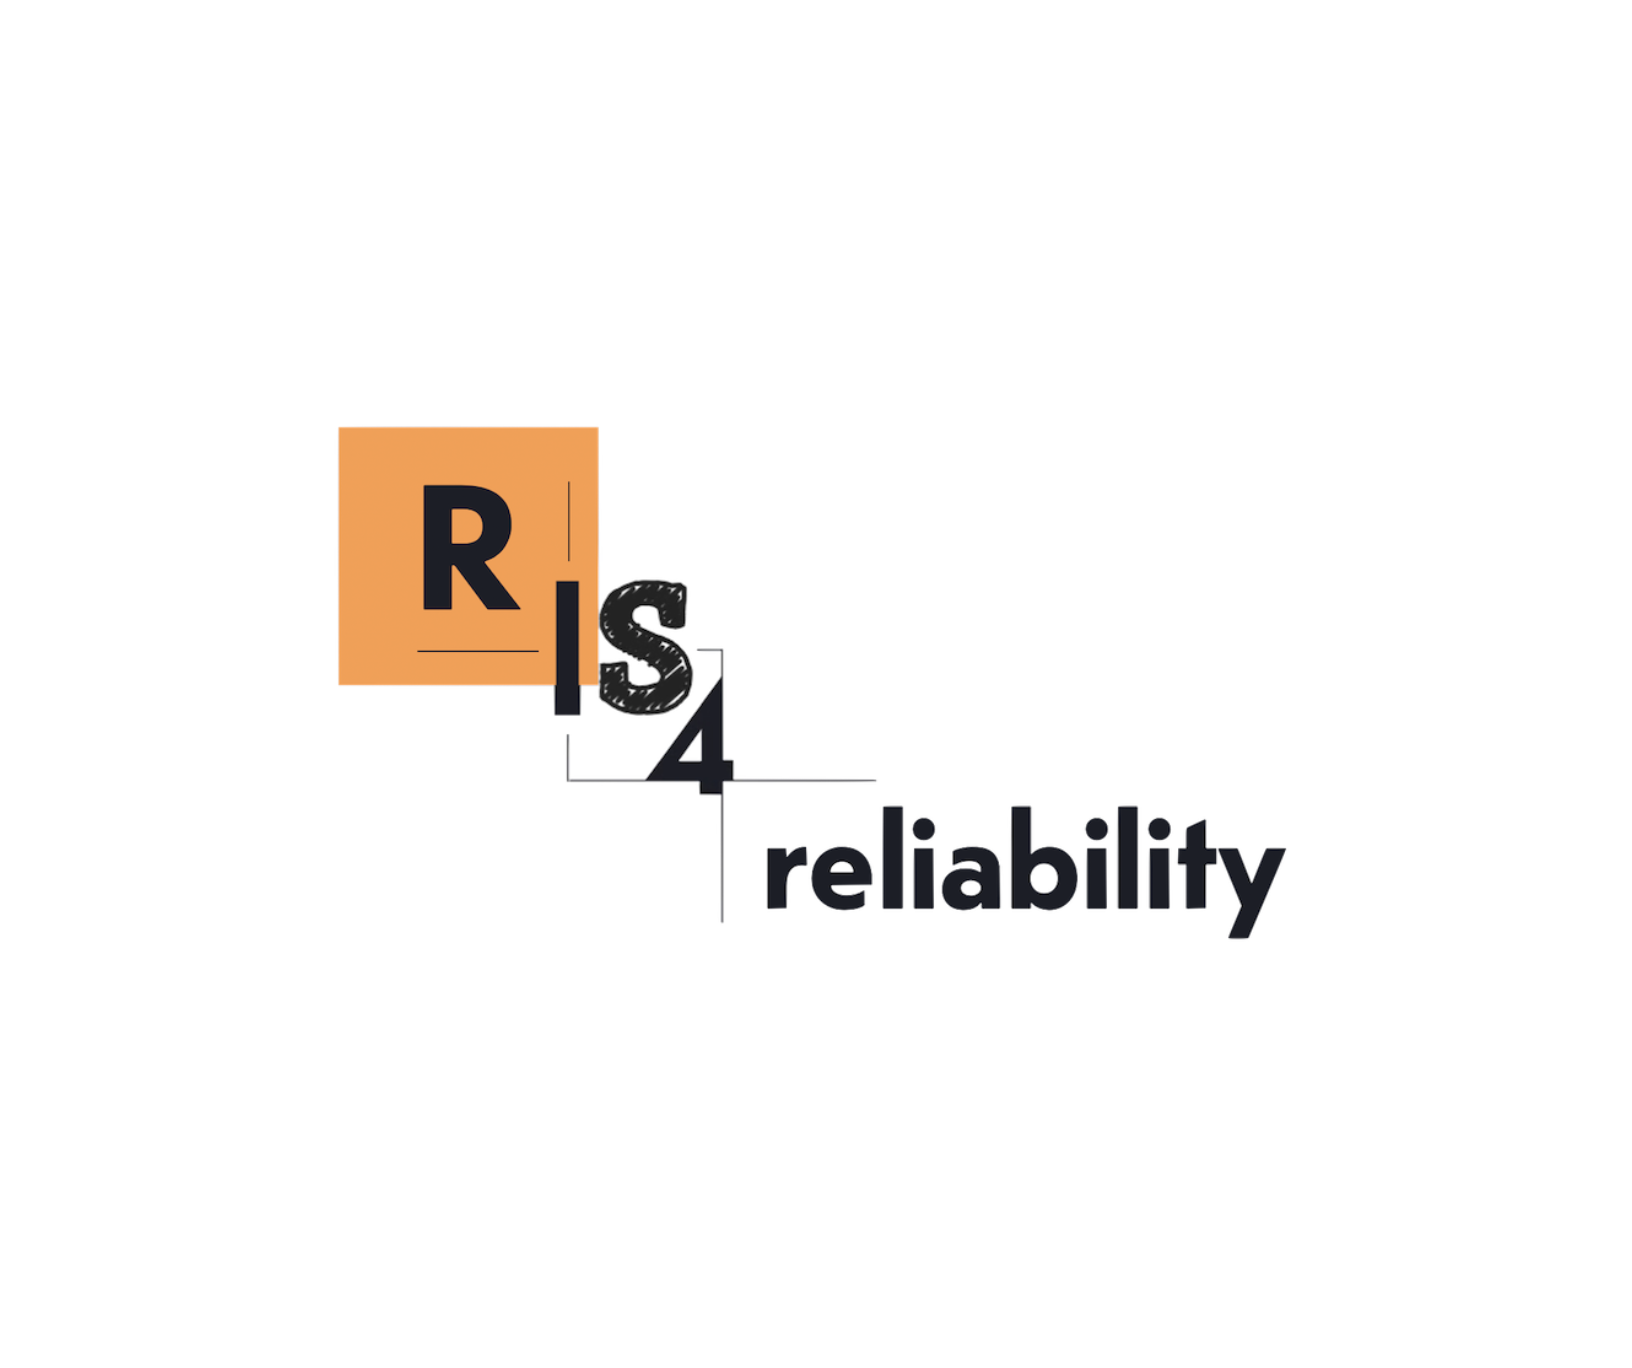 How to do Reliability - the Course